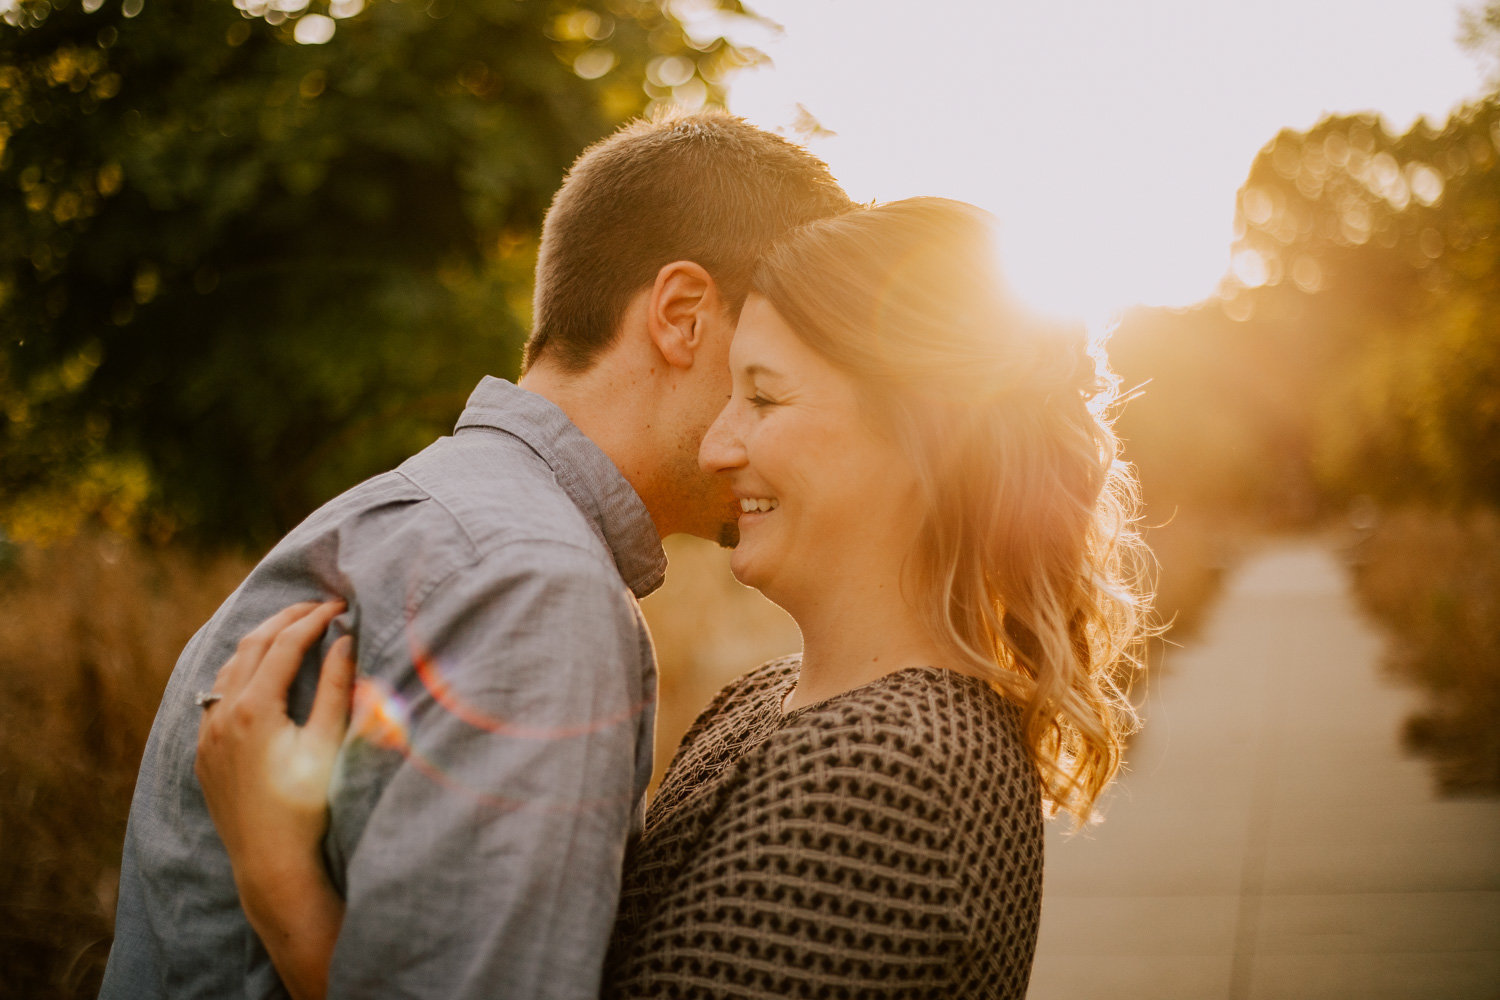 Vibrant-giggly-engagement-session-holliday-park-32